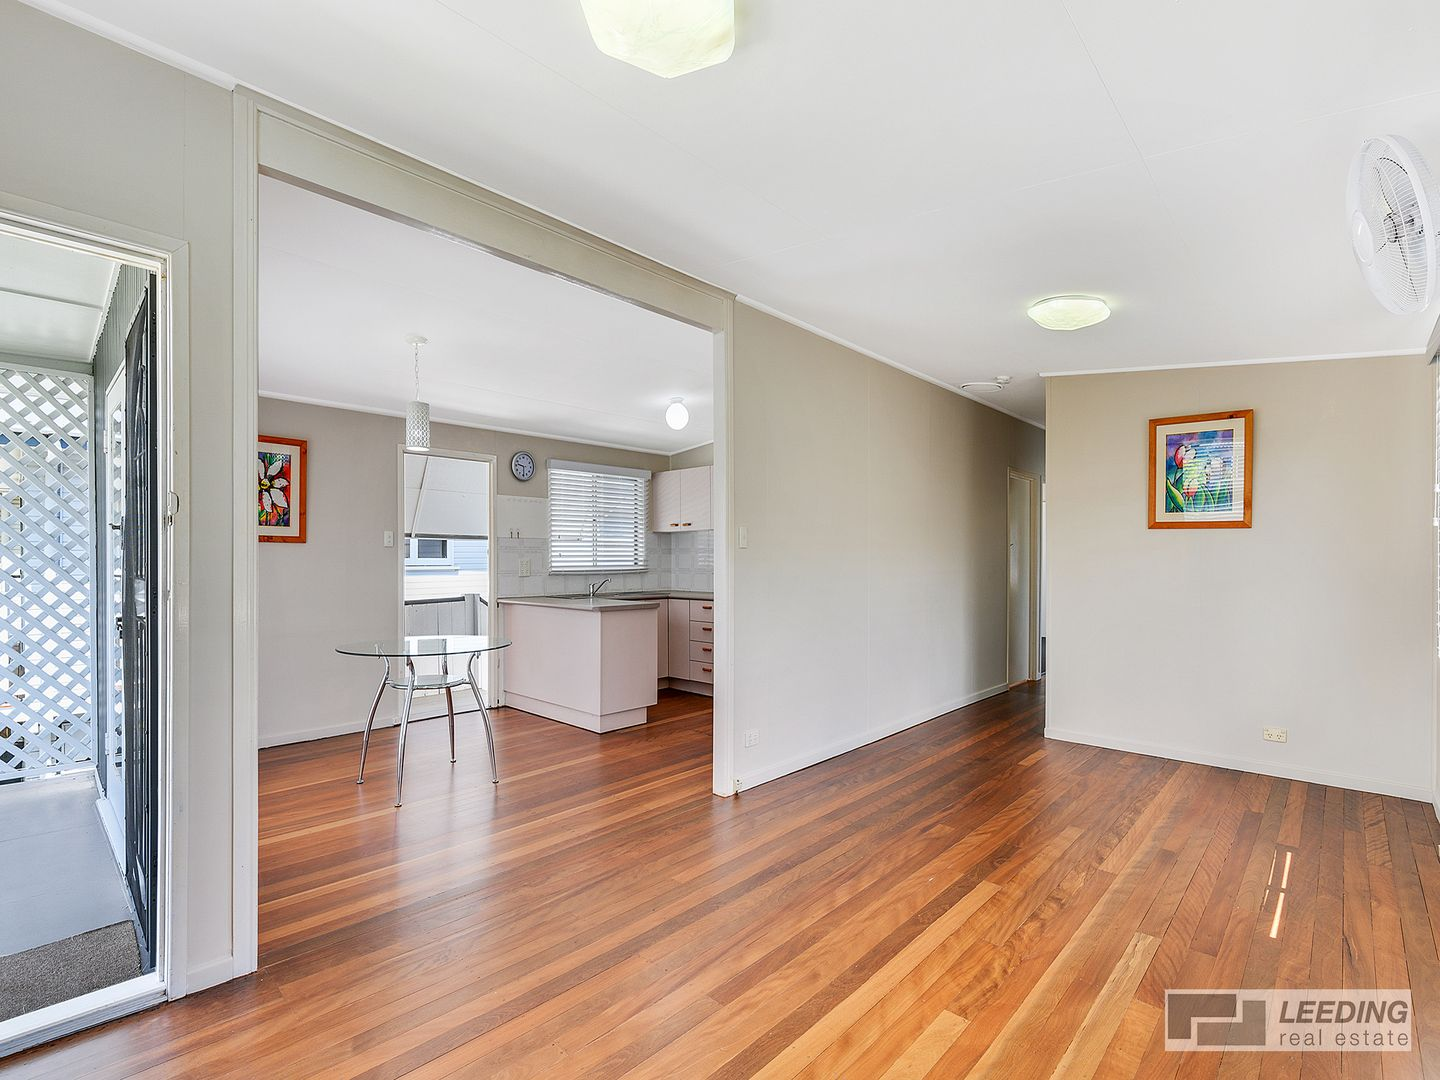 11 Gillies Street, Zillmere QLD 4034, Image 1